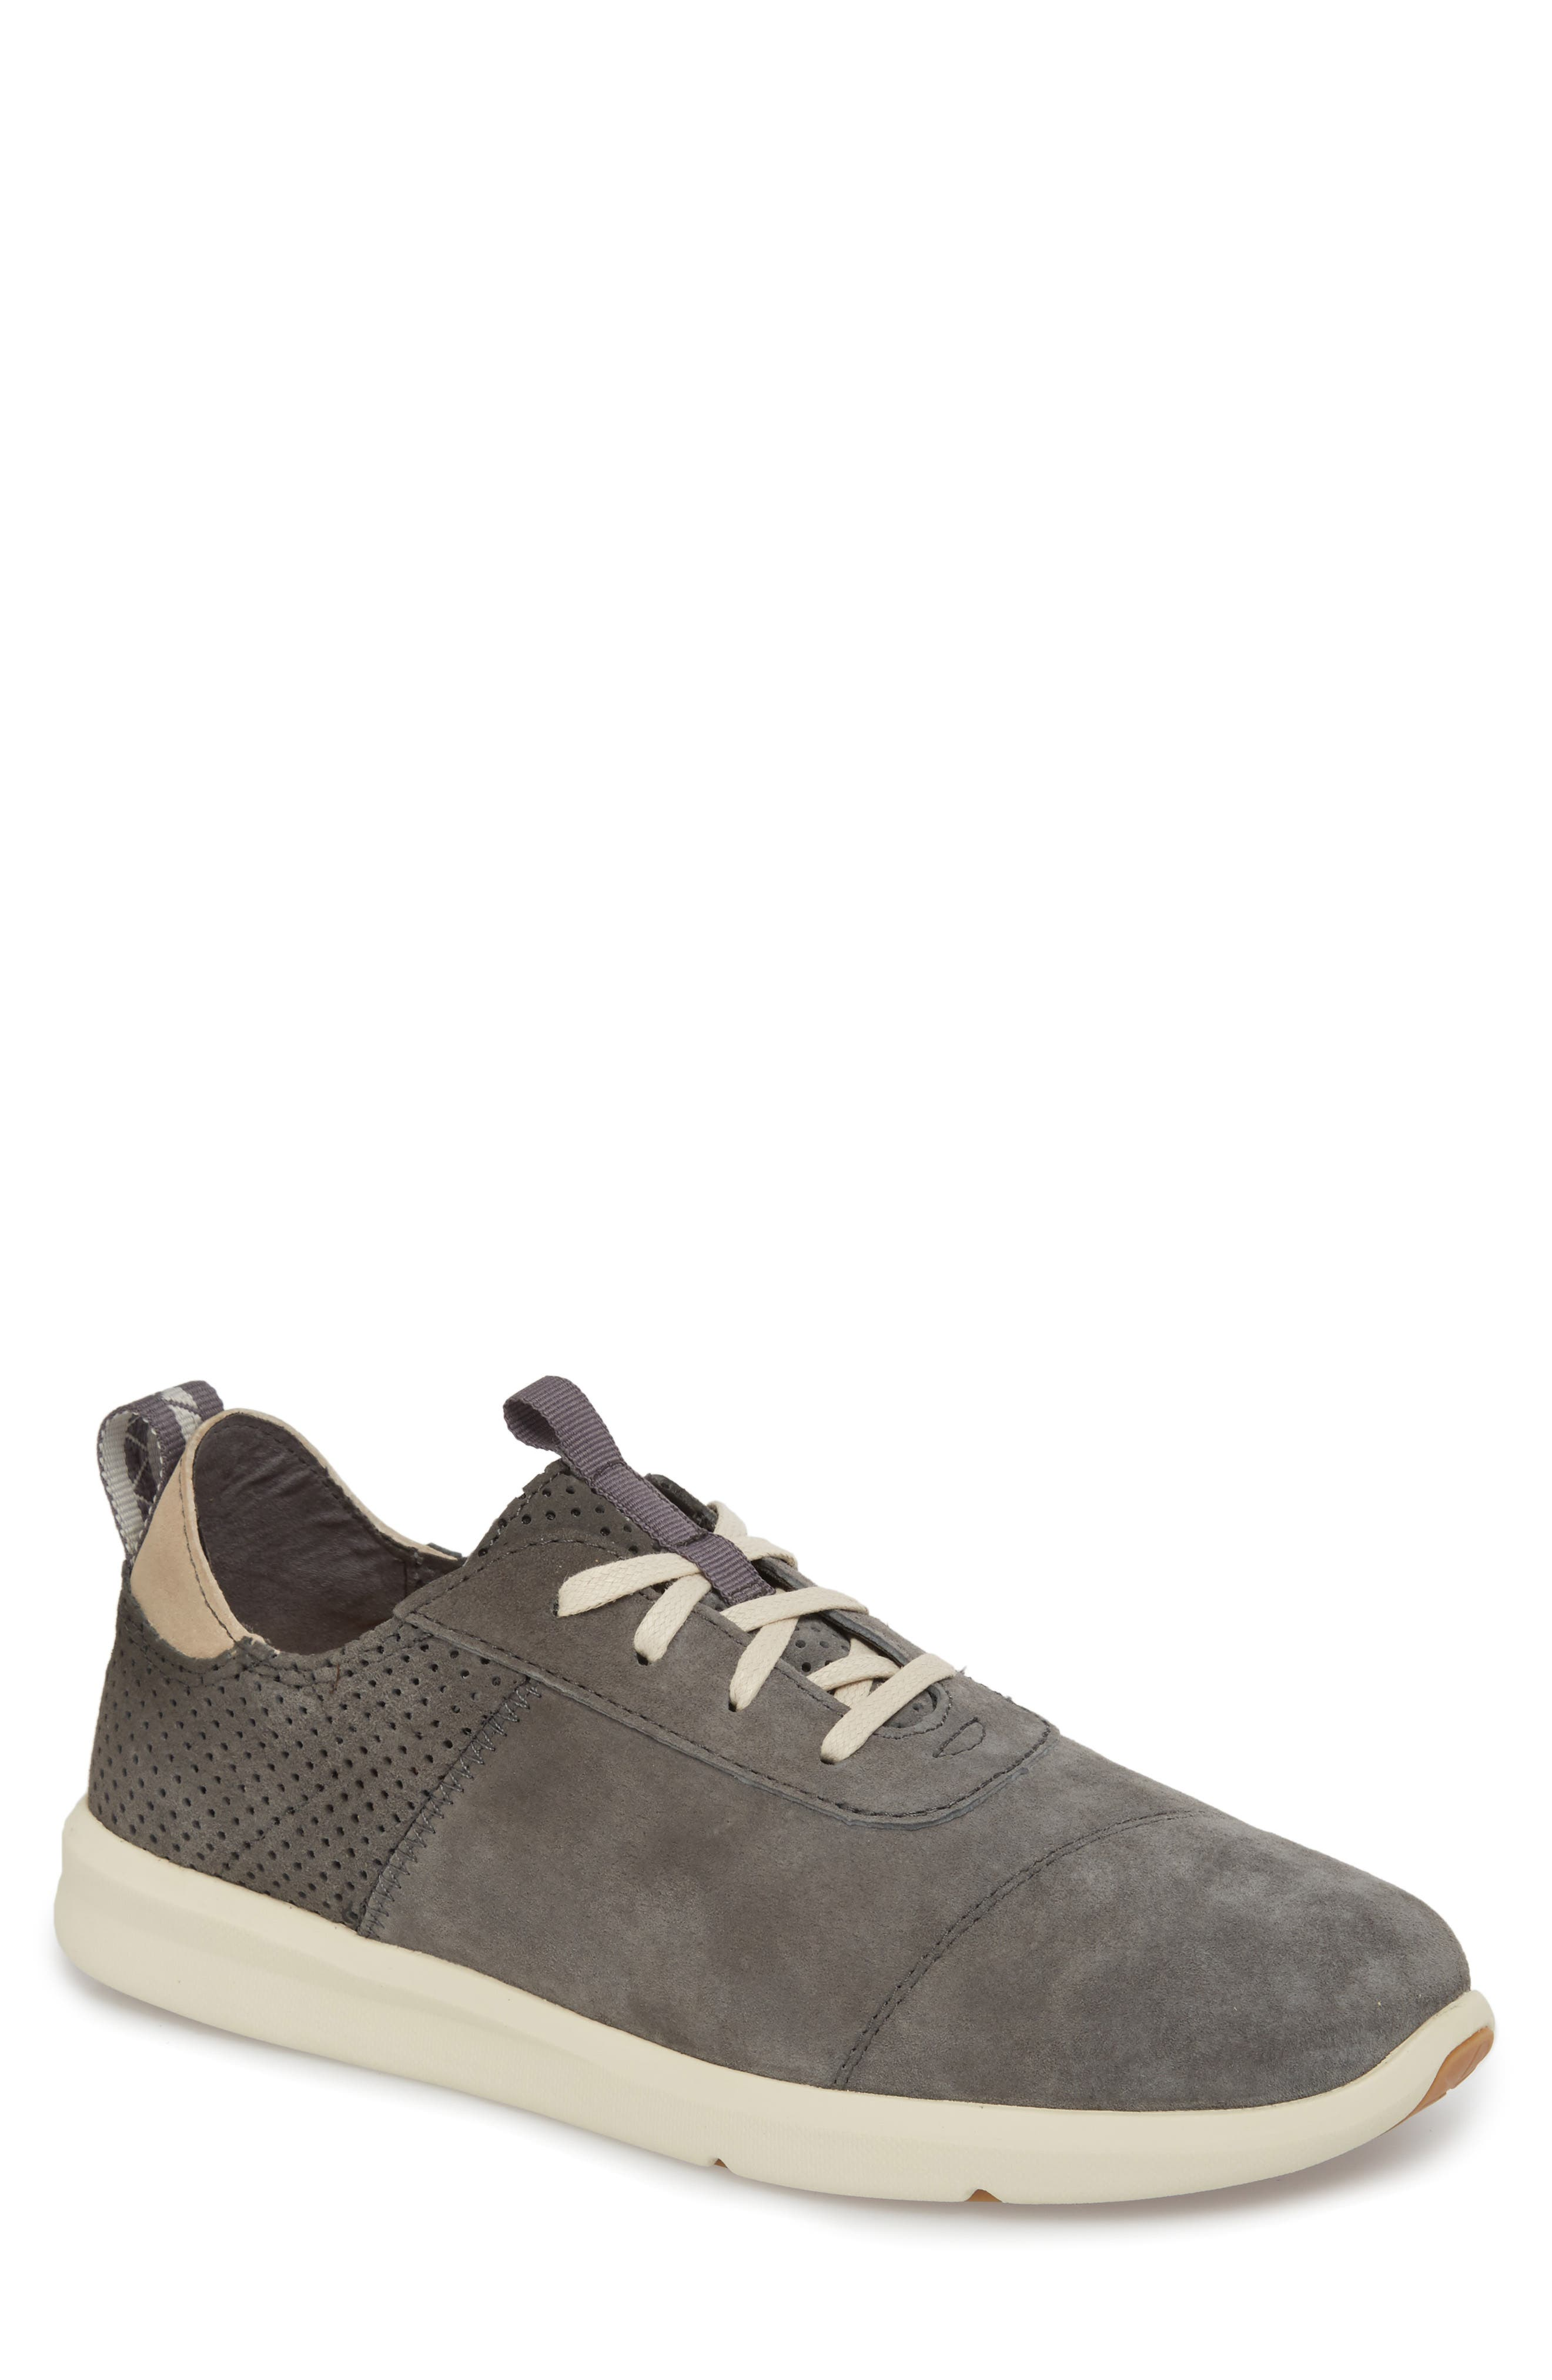 Cabrillo Perforated Low Top Sneaker,                         Main,                         color, Shade Suede